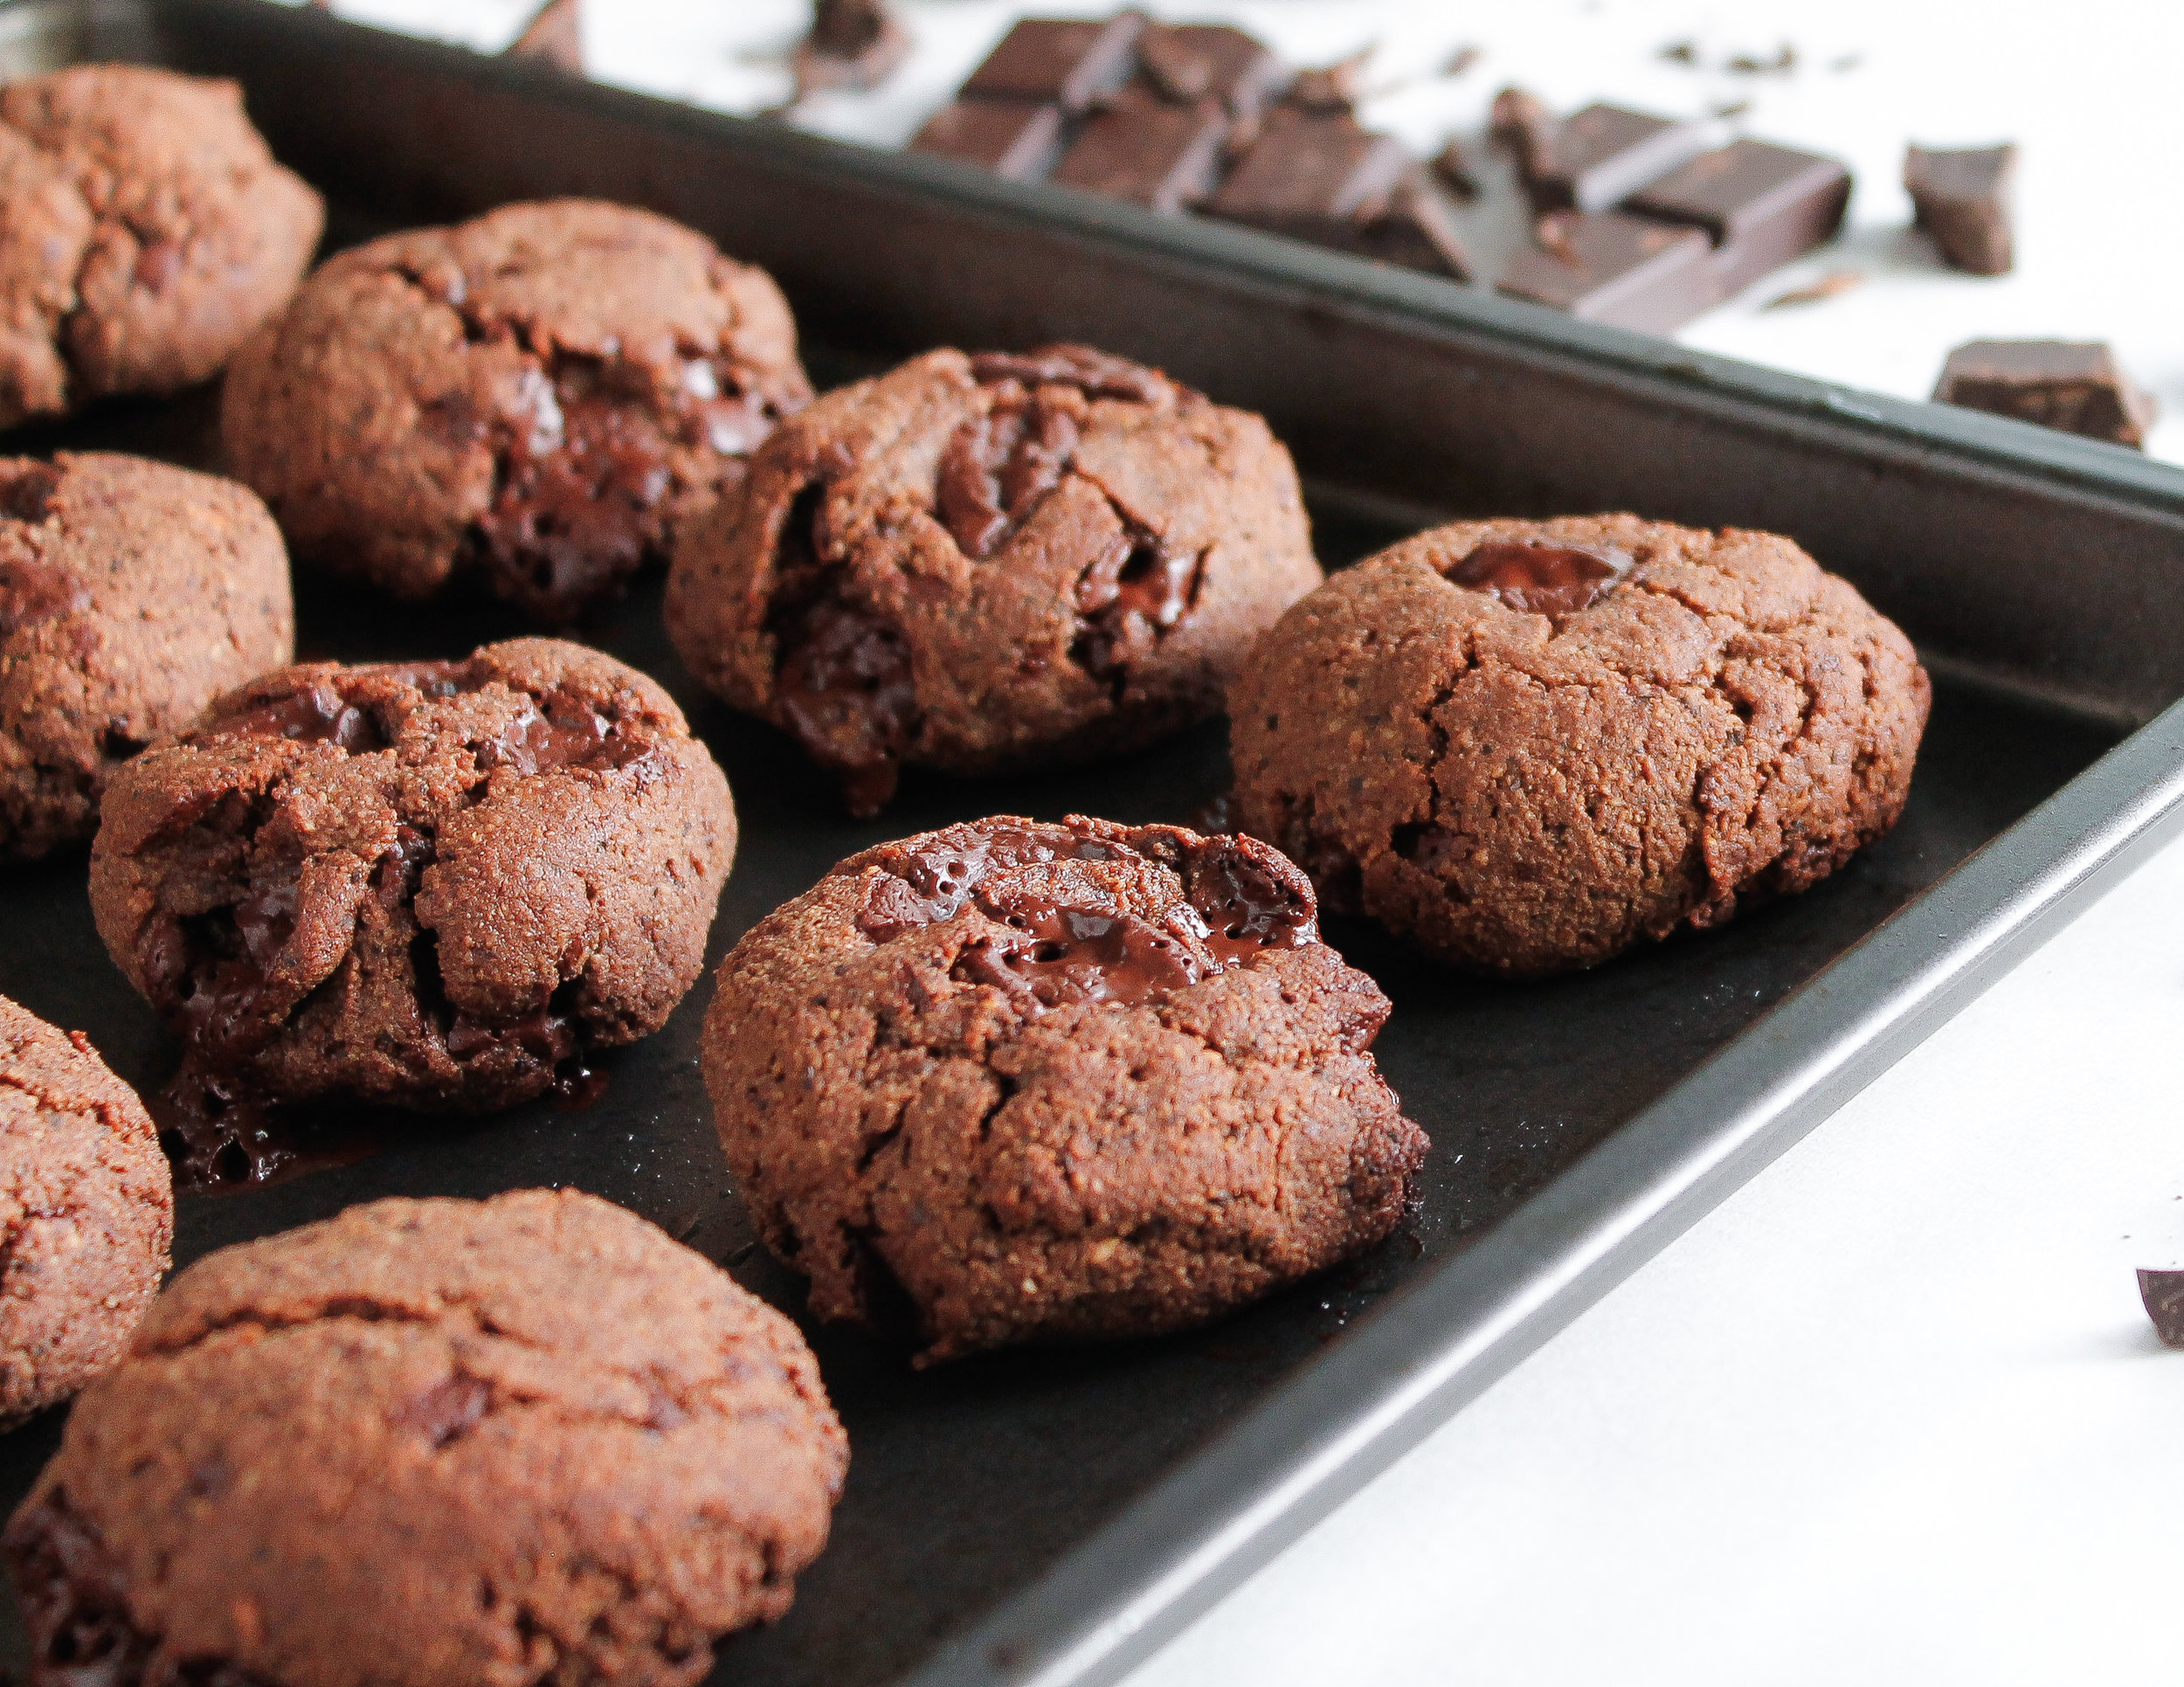 Paleo Double Chocolate Espresso Cookies || These paleo double chocolate espresso cookies are grain free, gluten free, dairy free AND refined sugar free! Made with nourishing ingredients like raw cacao, coconut oil and almond flour, they satisfy your sweet tooth while also nourishing your body. The perfect healthy sweet treat or healthy midday snack. || plentyandwell.com || #paleocookies #chocolatecookies #grainfreebaking #grainfreerecipes